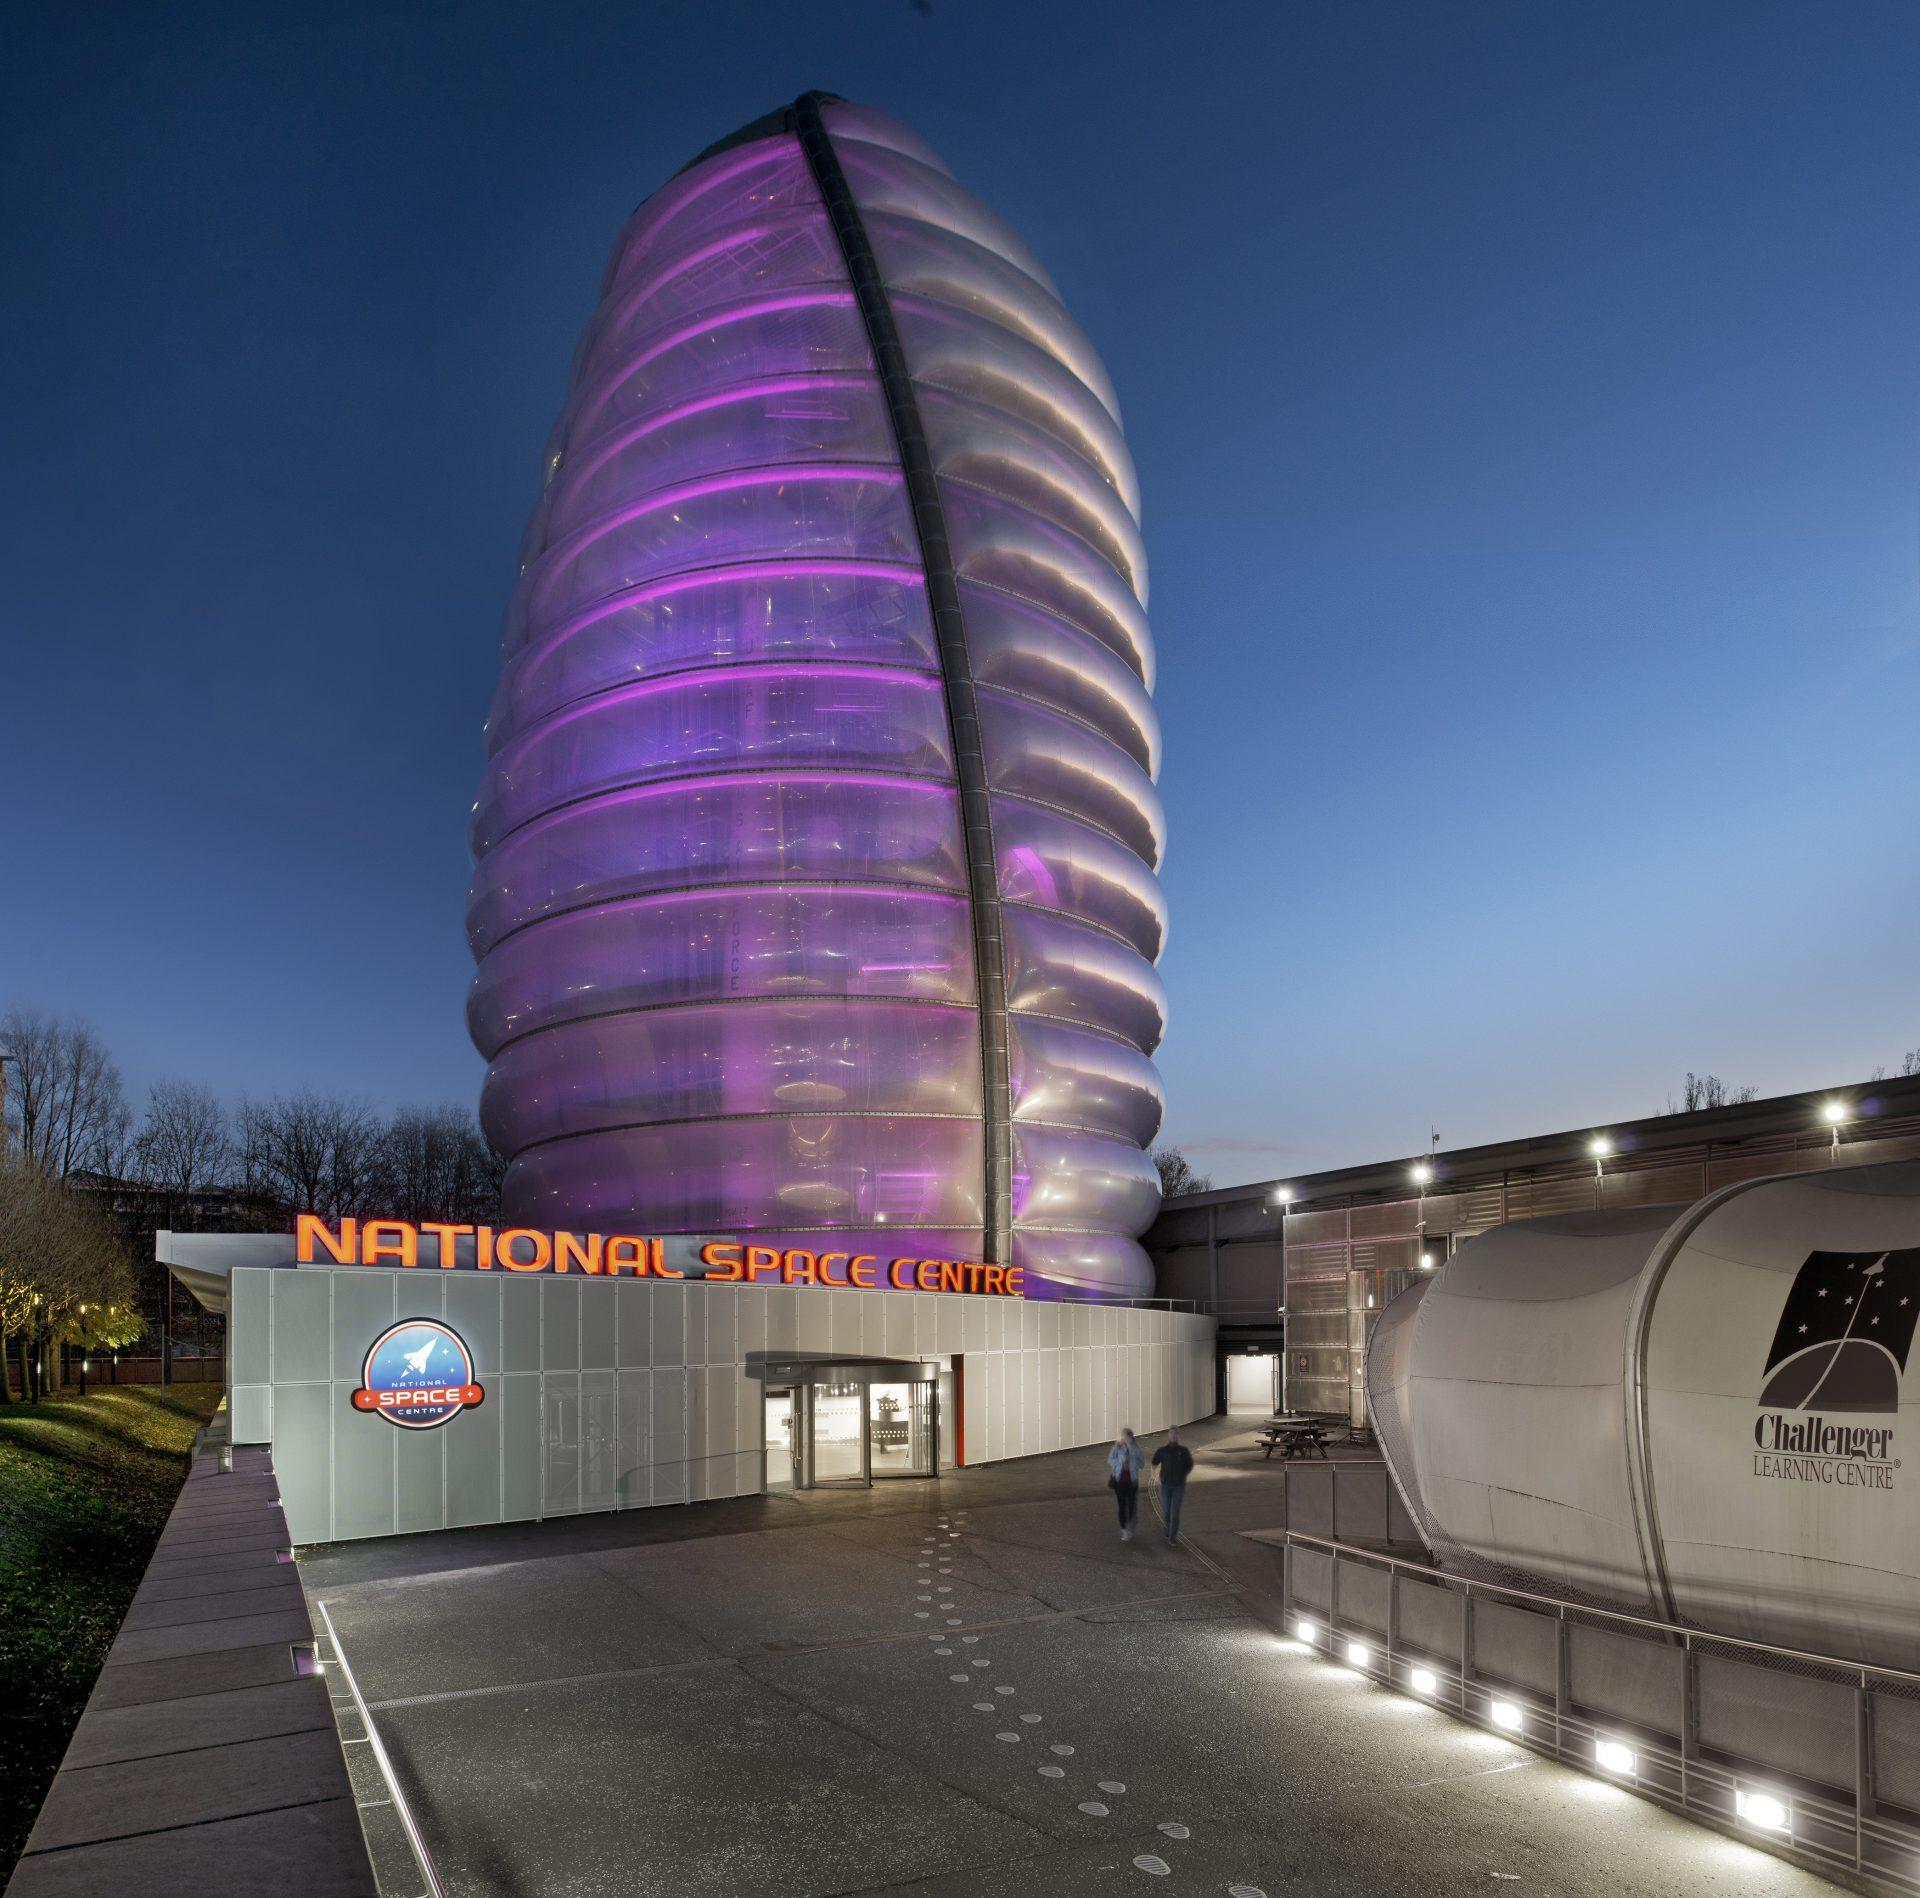 Value: National Space Centre Launch Pad - Constructing Excellence